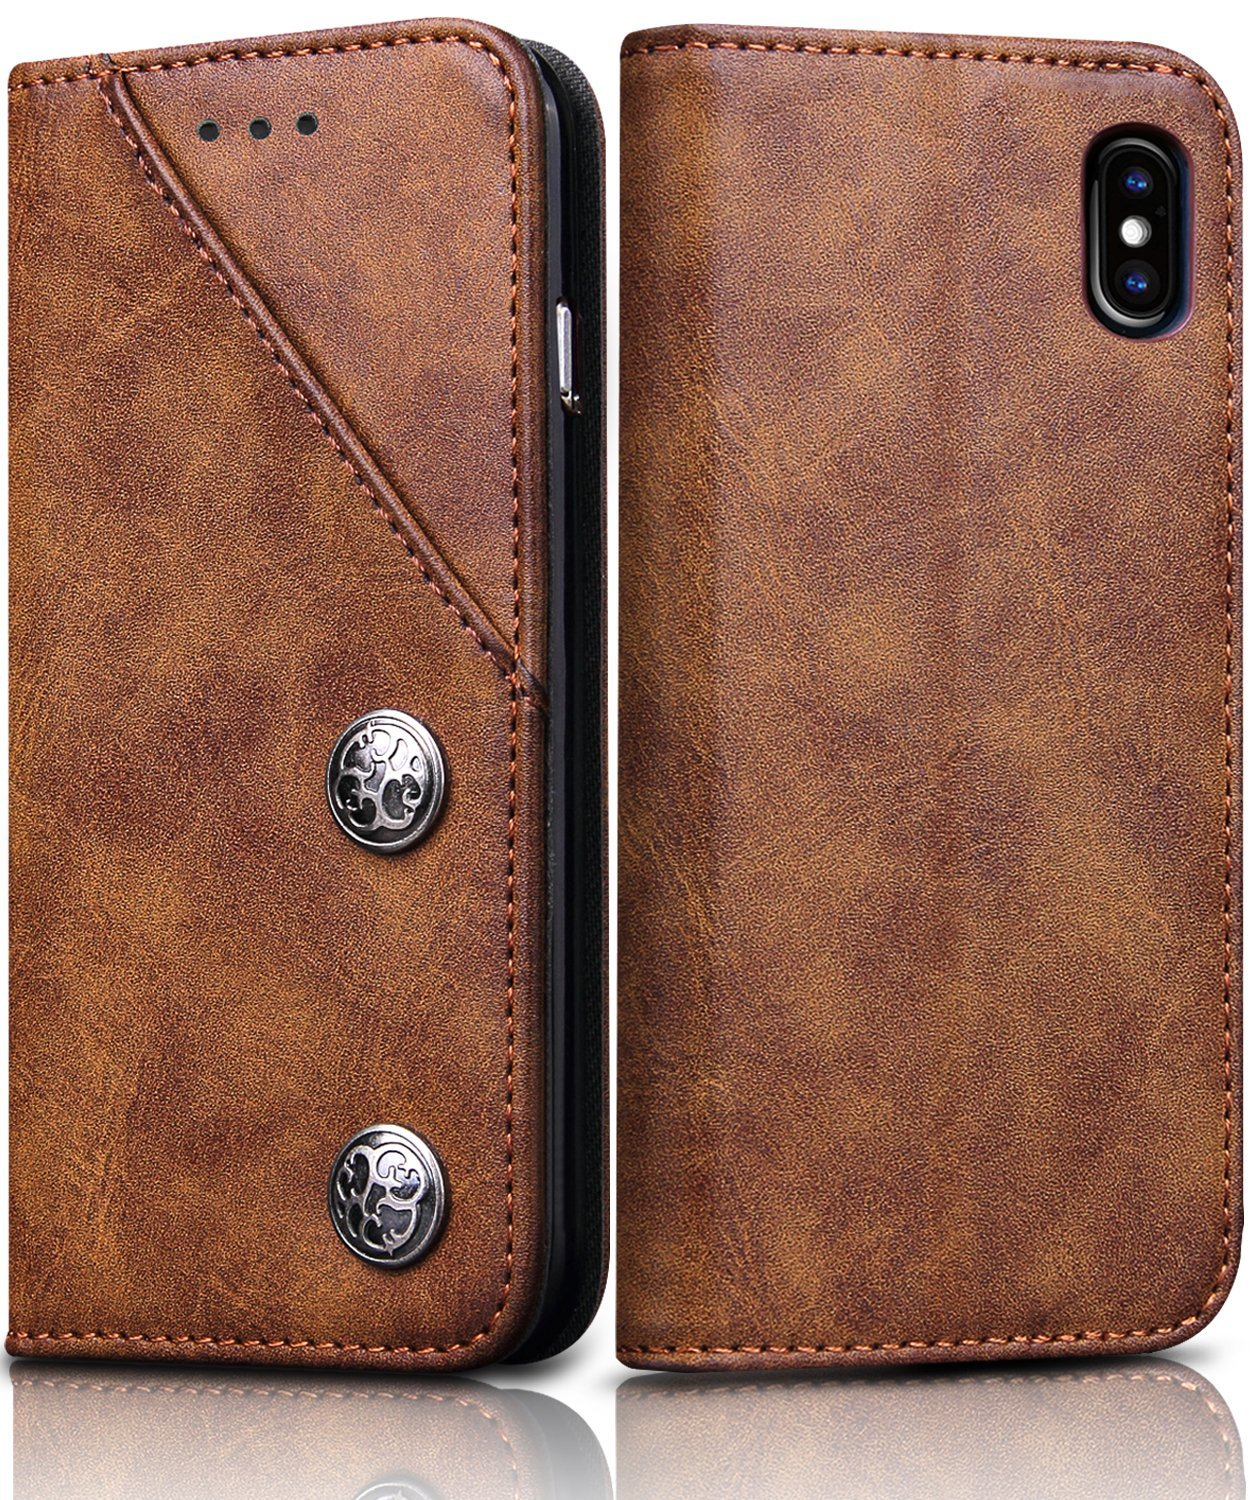 iPhone X cases 6 best leather phone kick stand wallet